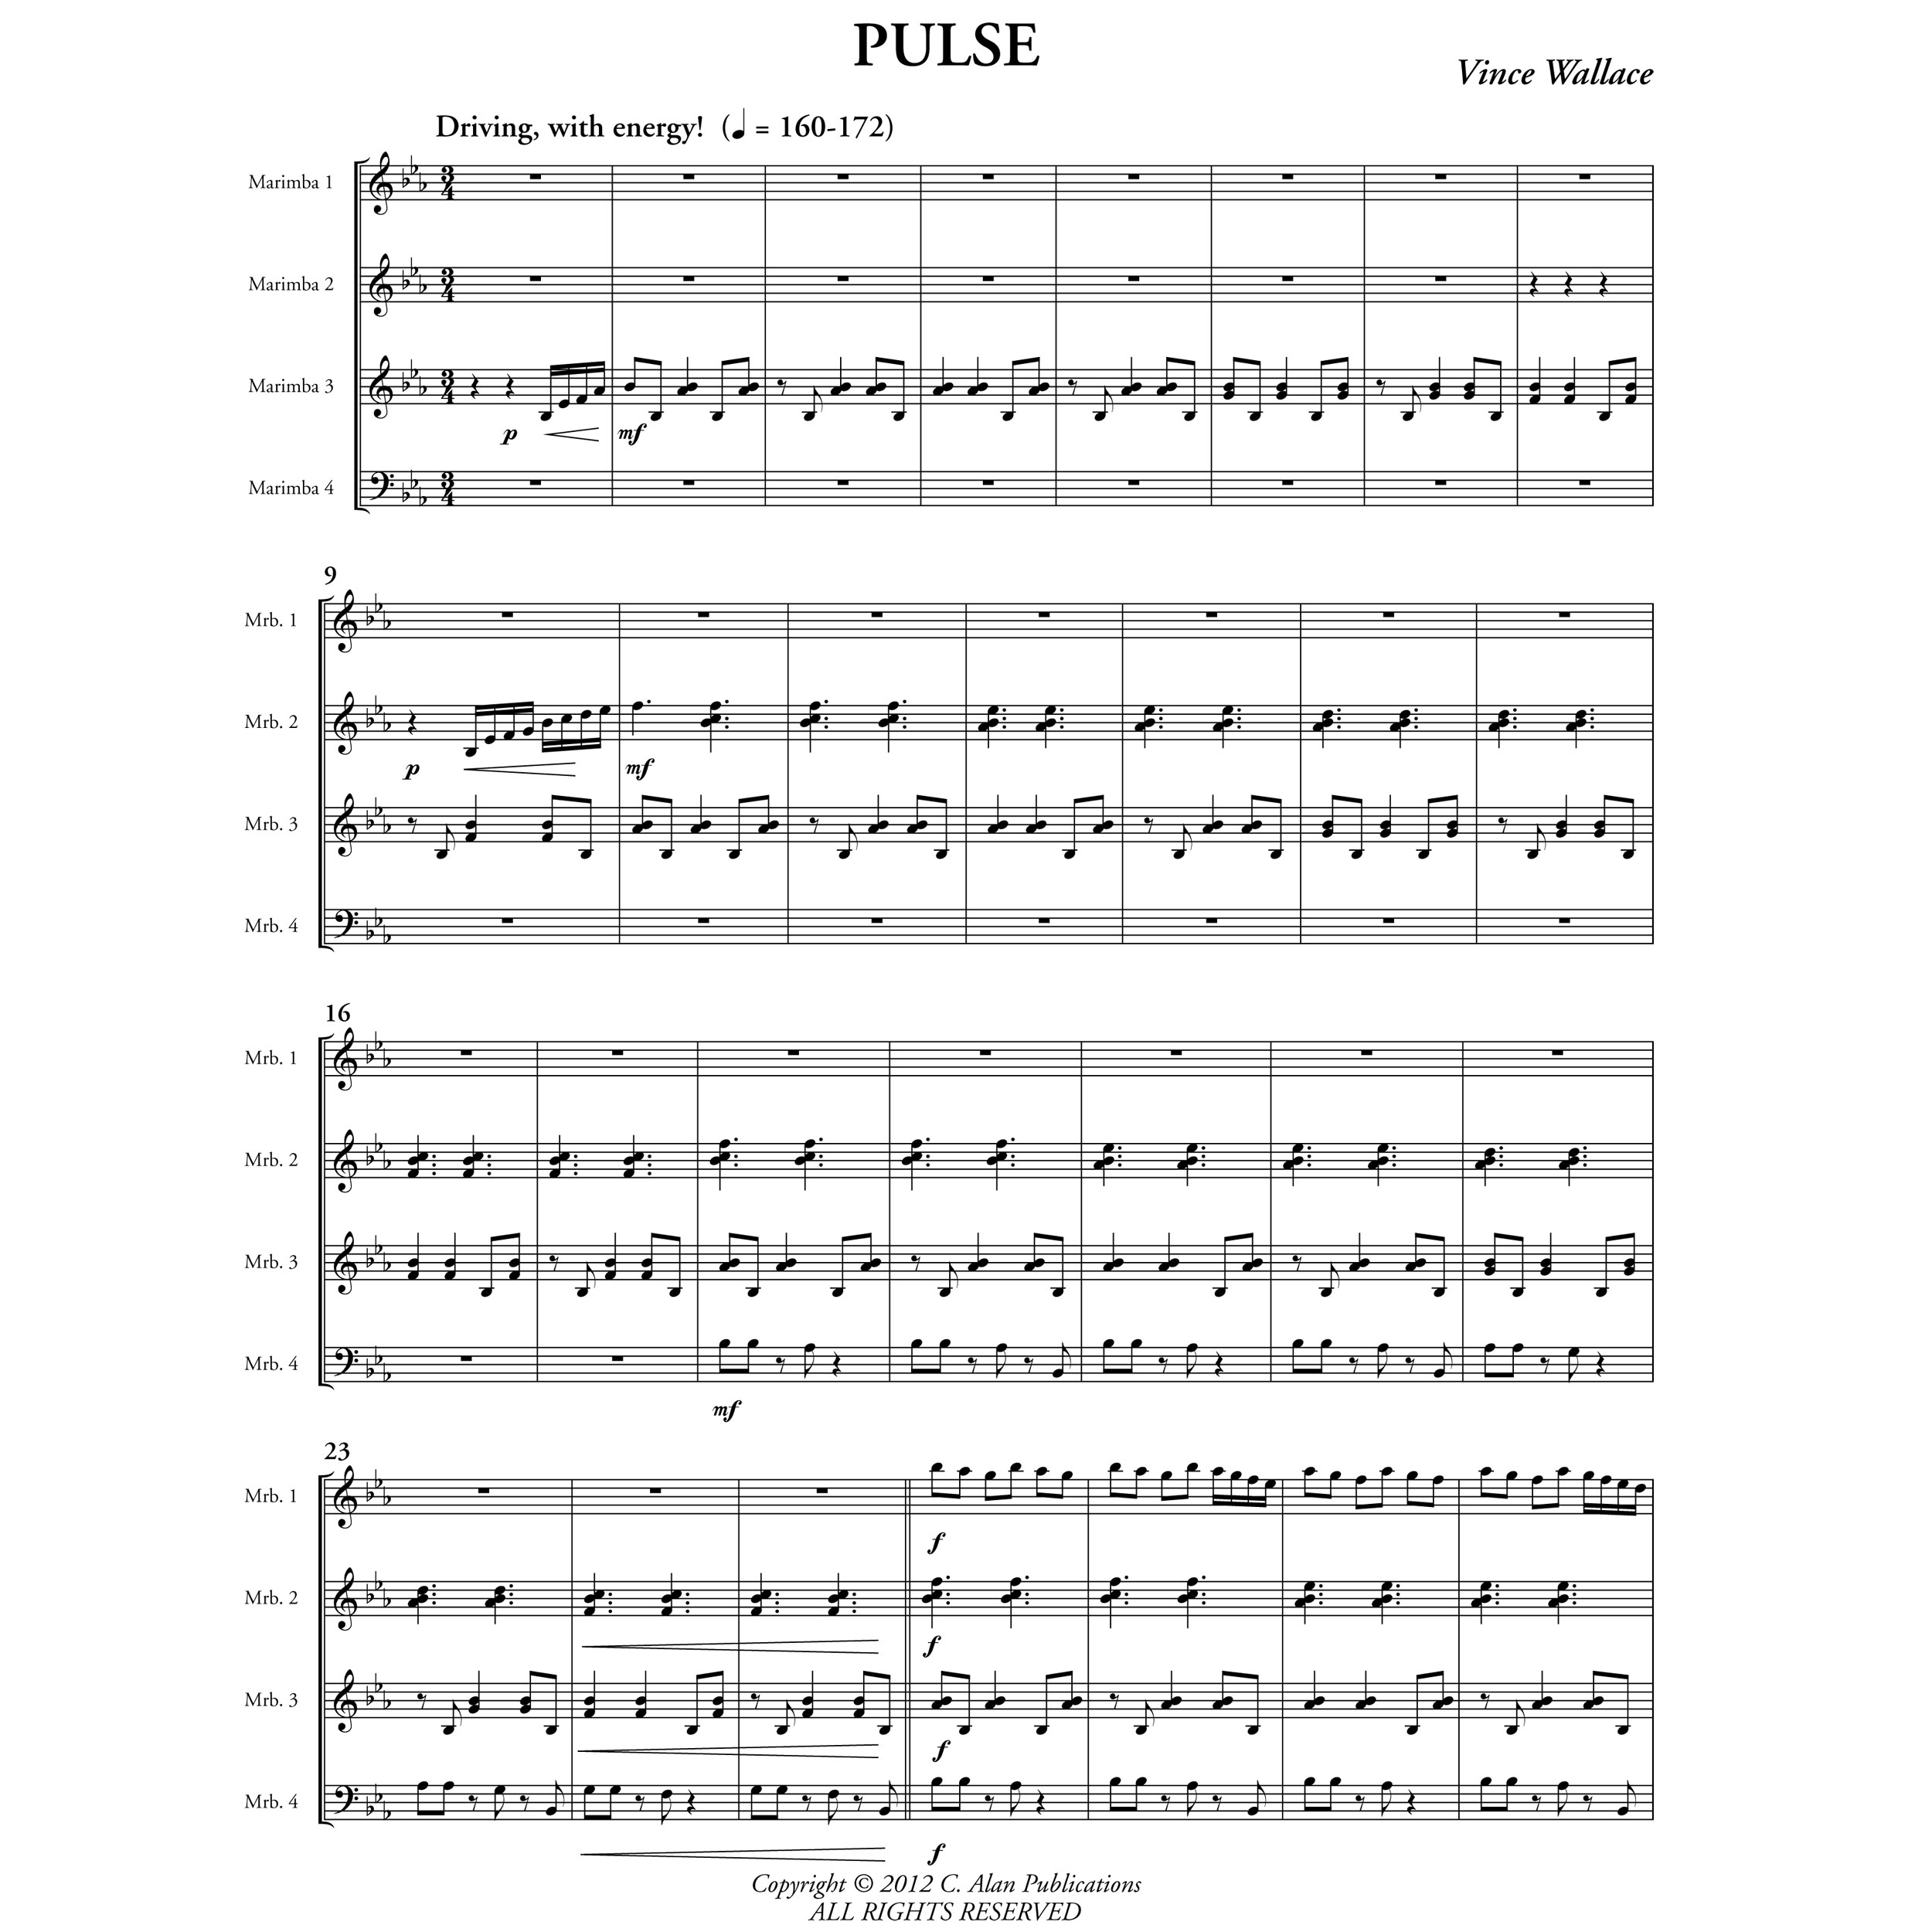 Pulse by Vince Wallace